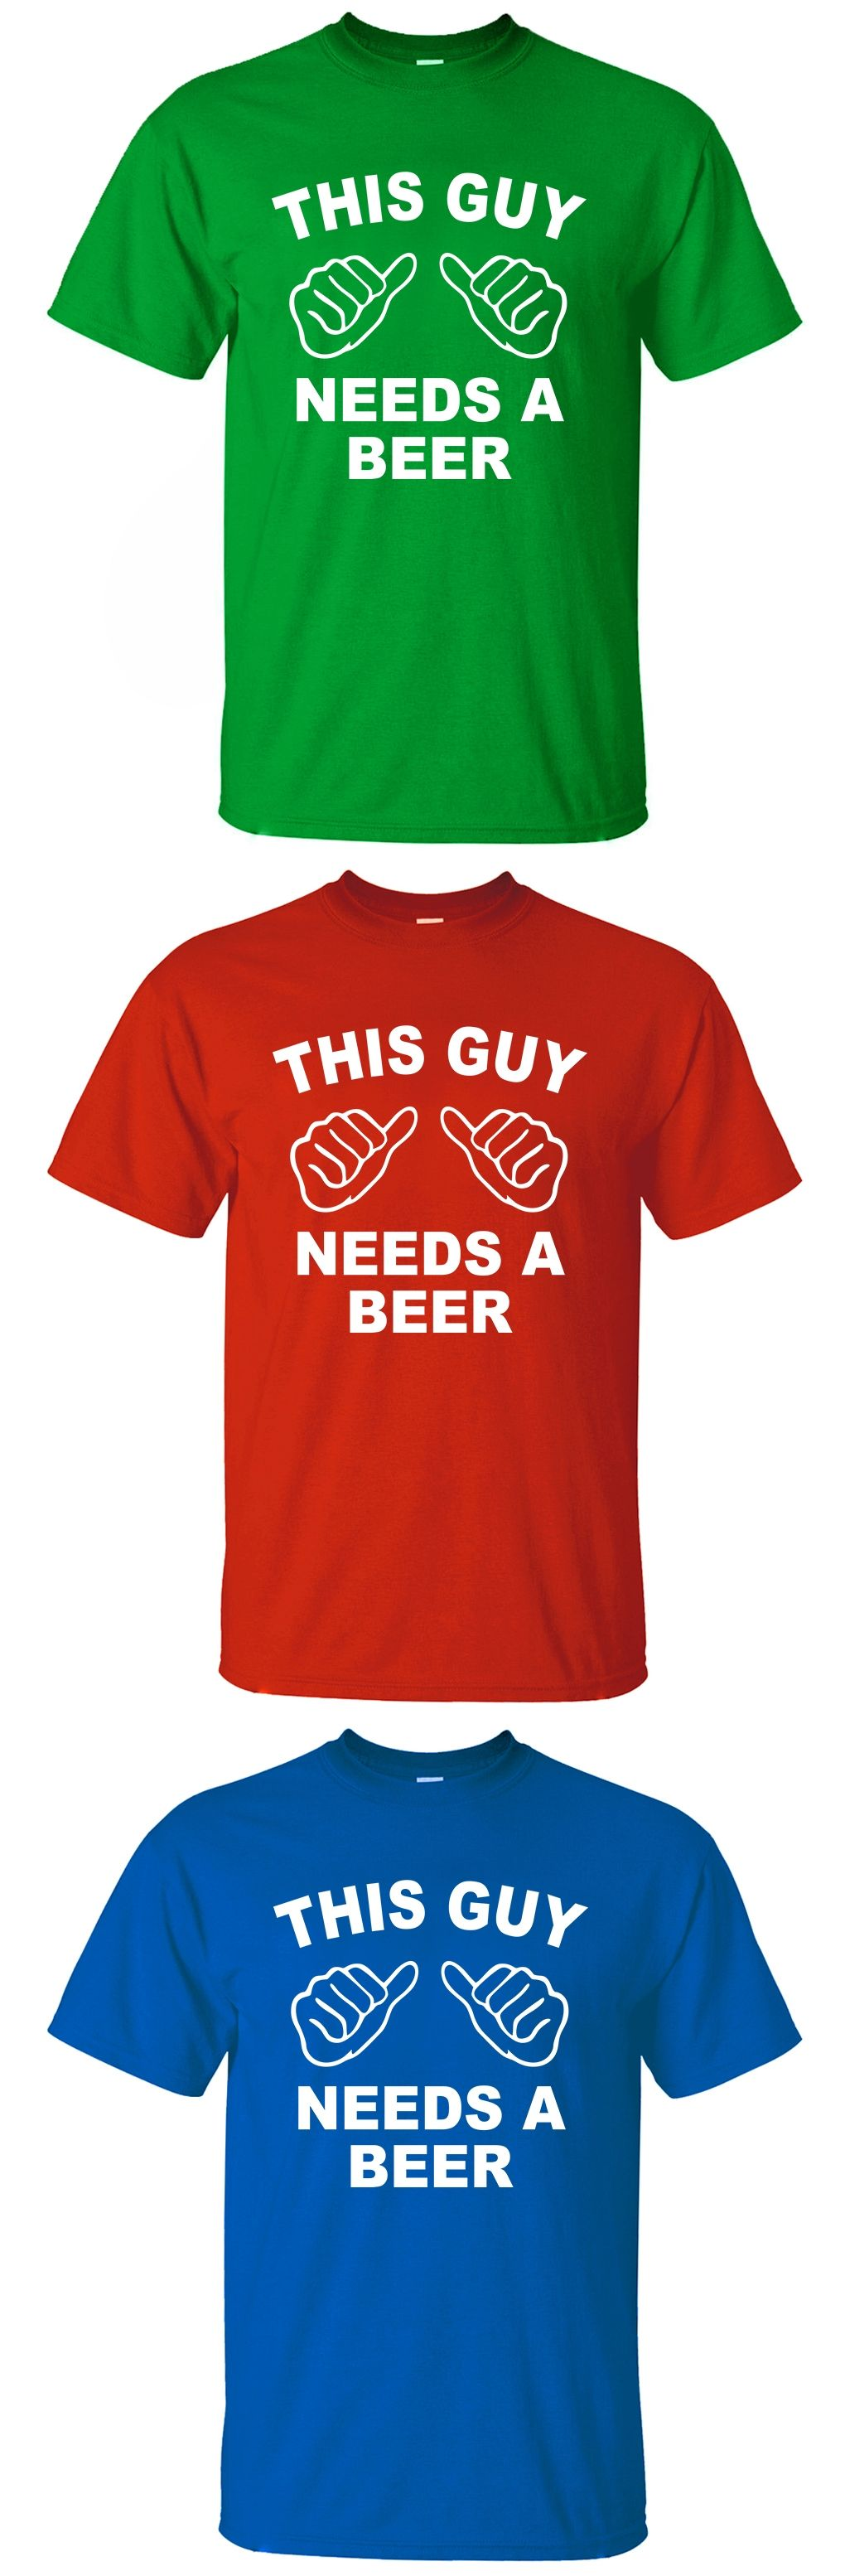 cf6aa55f8e36 This Guy Needs A Beer Funny T Shirts Men 2017 Summer Creative Short Sleeve  T Shirt